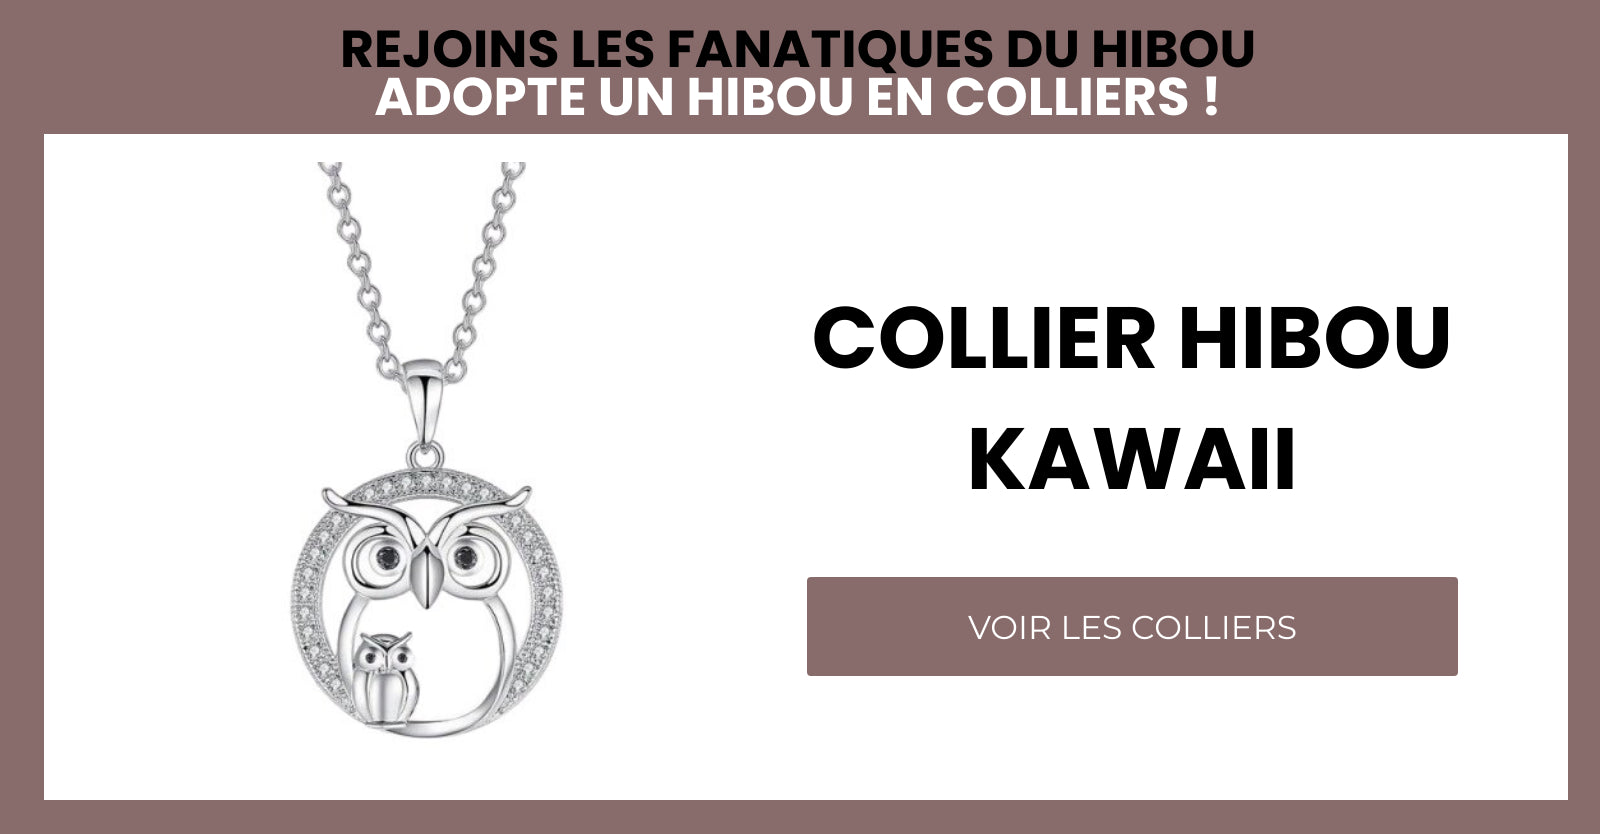 COLLIER HIBOU KAWAII